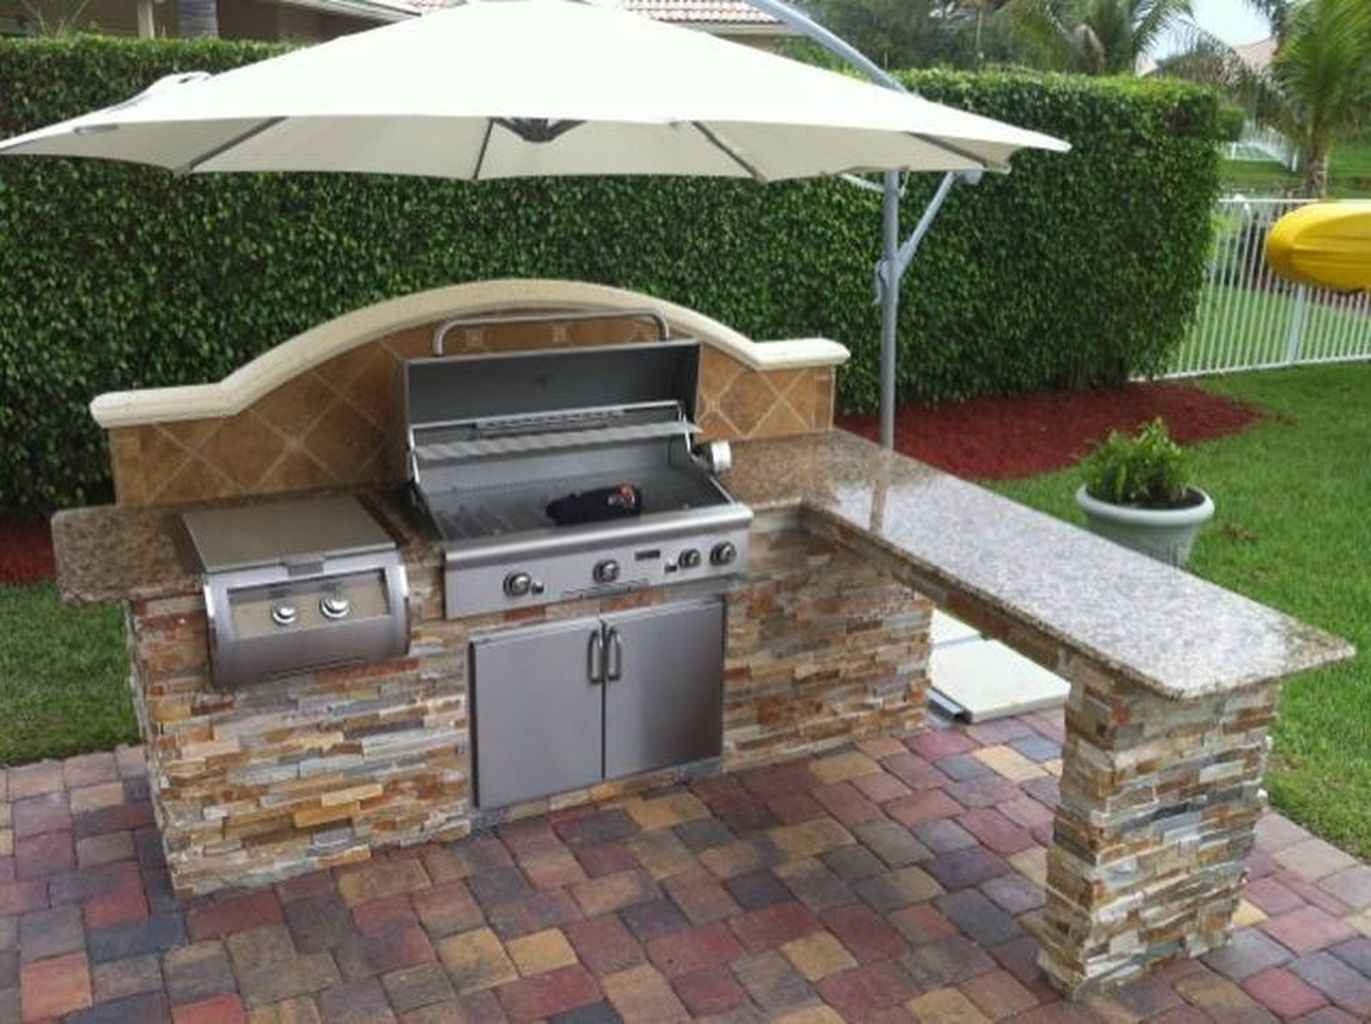 95 awesome outdoor kitchen and grill backyard ideas for summer sandy berry 9 in 2020 on outdoor kitchen easy id=55204